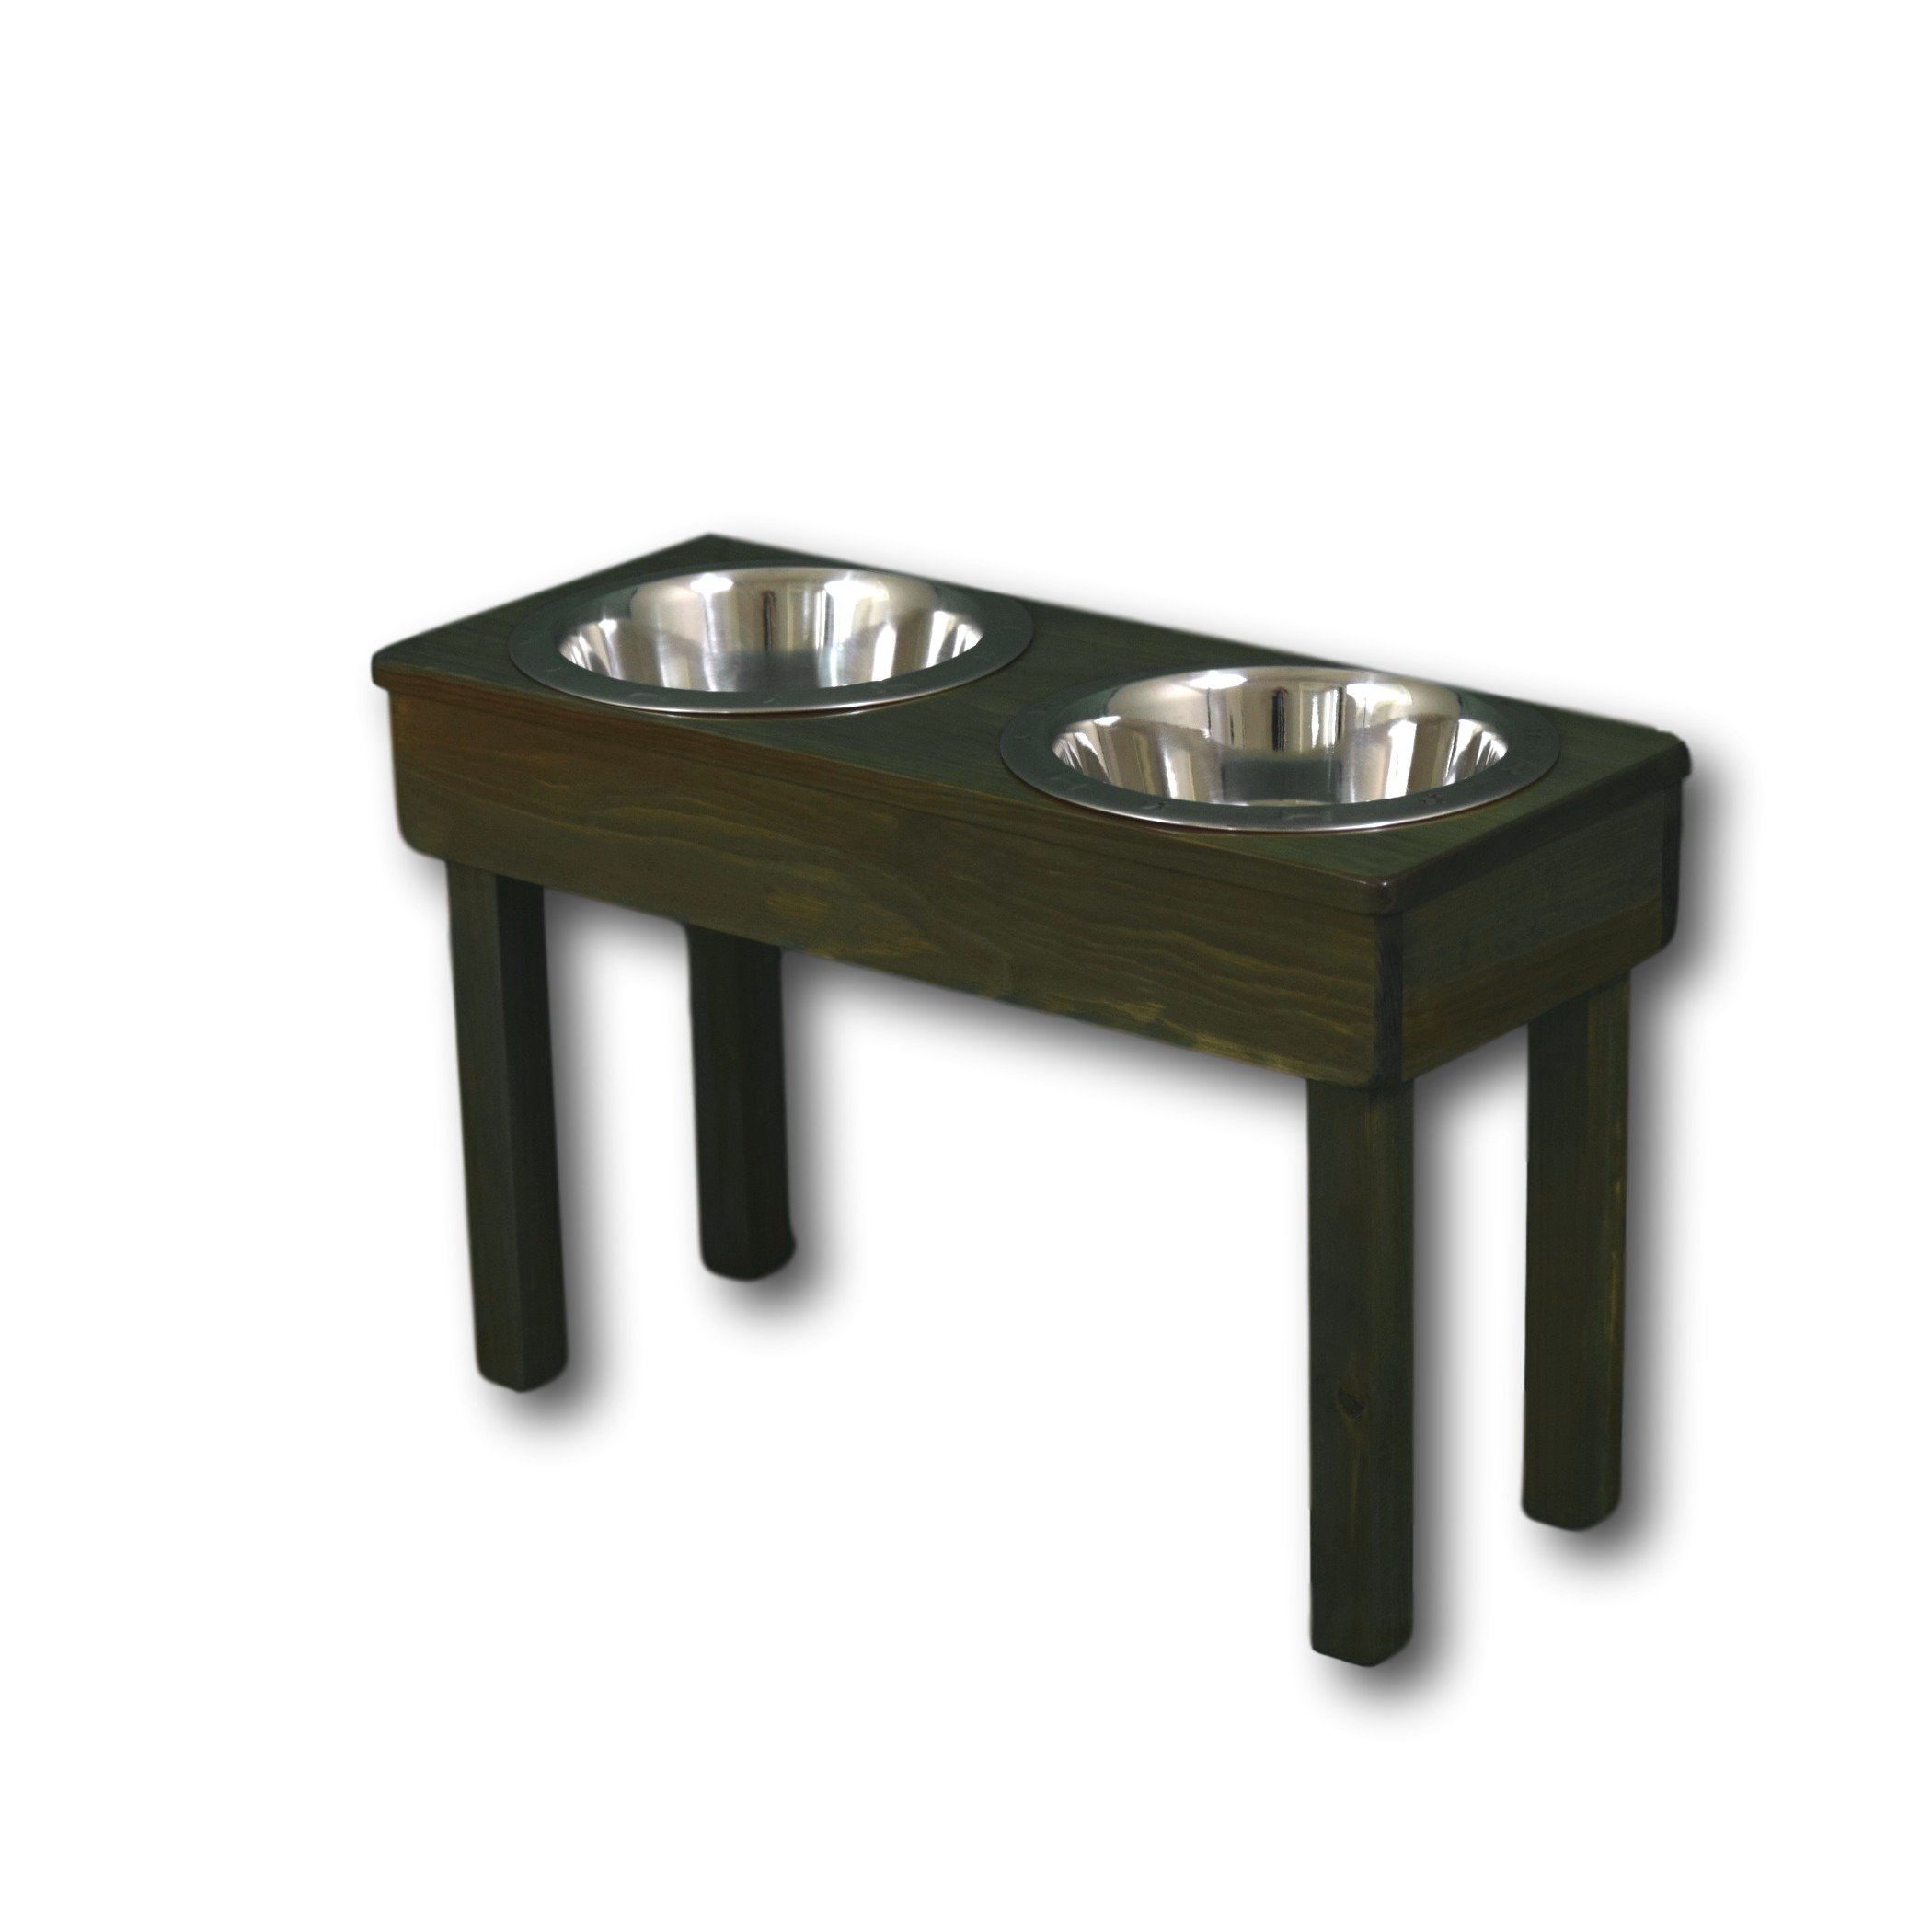 OFTO Raised Dog Single or Double Bowls - Solid Wood Cat and Dog Bowl Stands, with Embossed Stainless Steel Bowl(s) -Large, Medium, and Universal Sizes - Eco-Friendly and Non-Toxic - Made in the USA